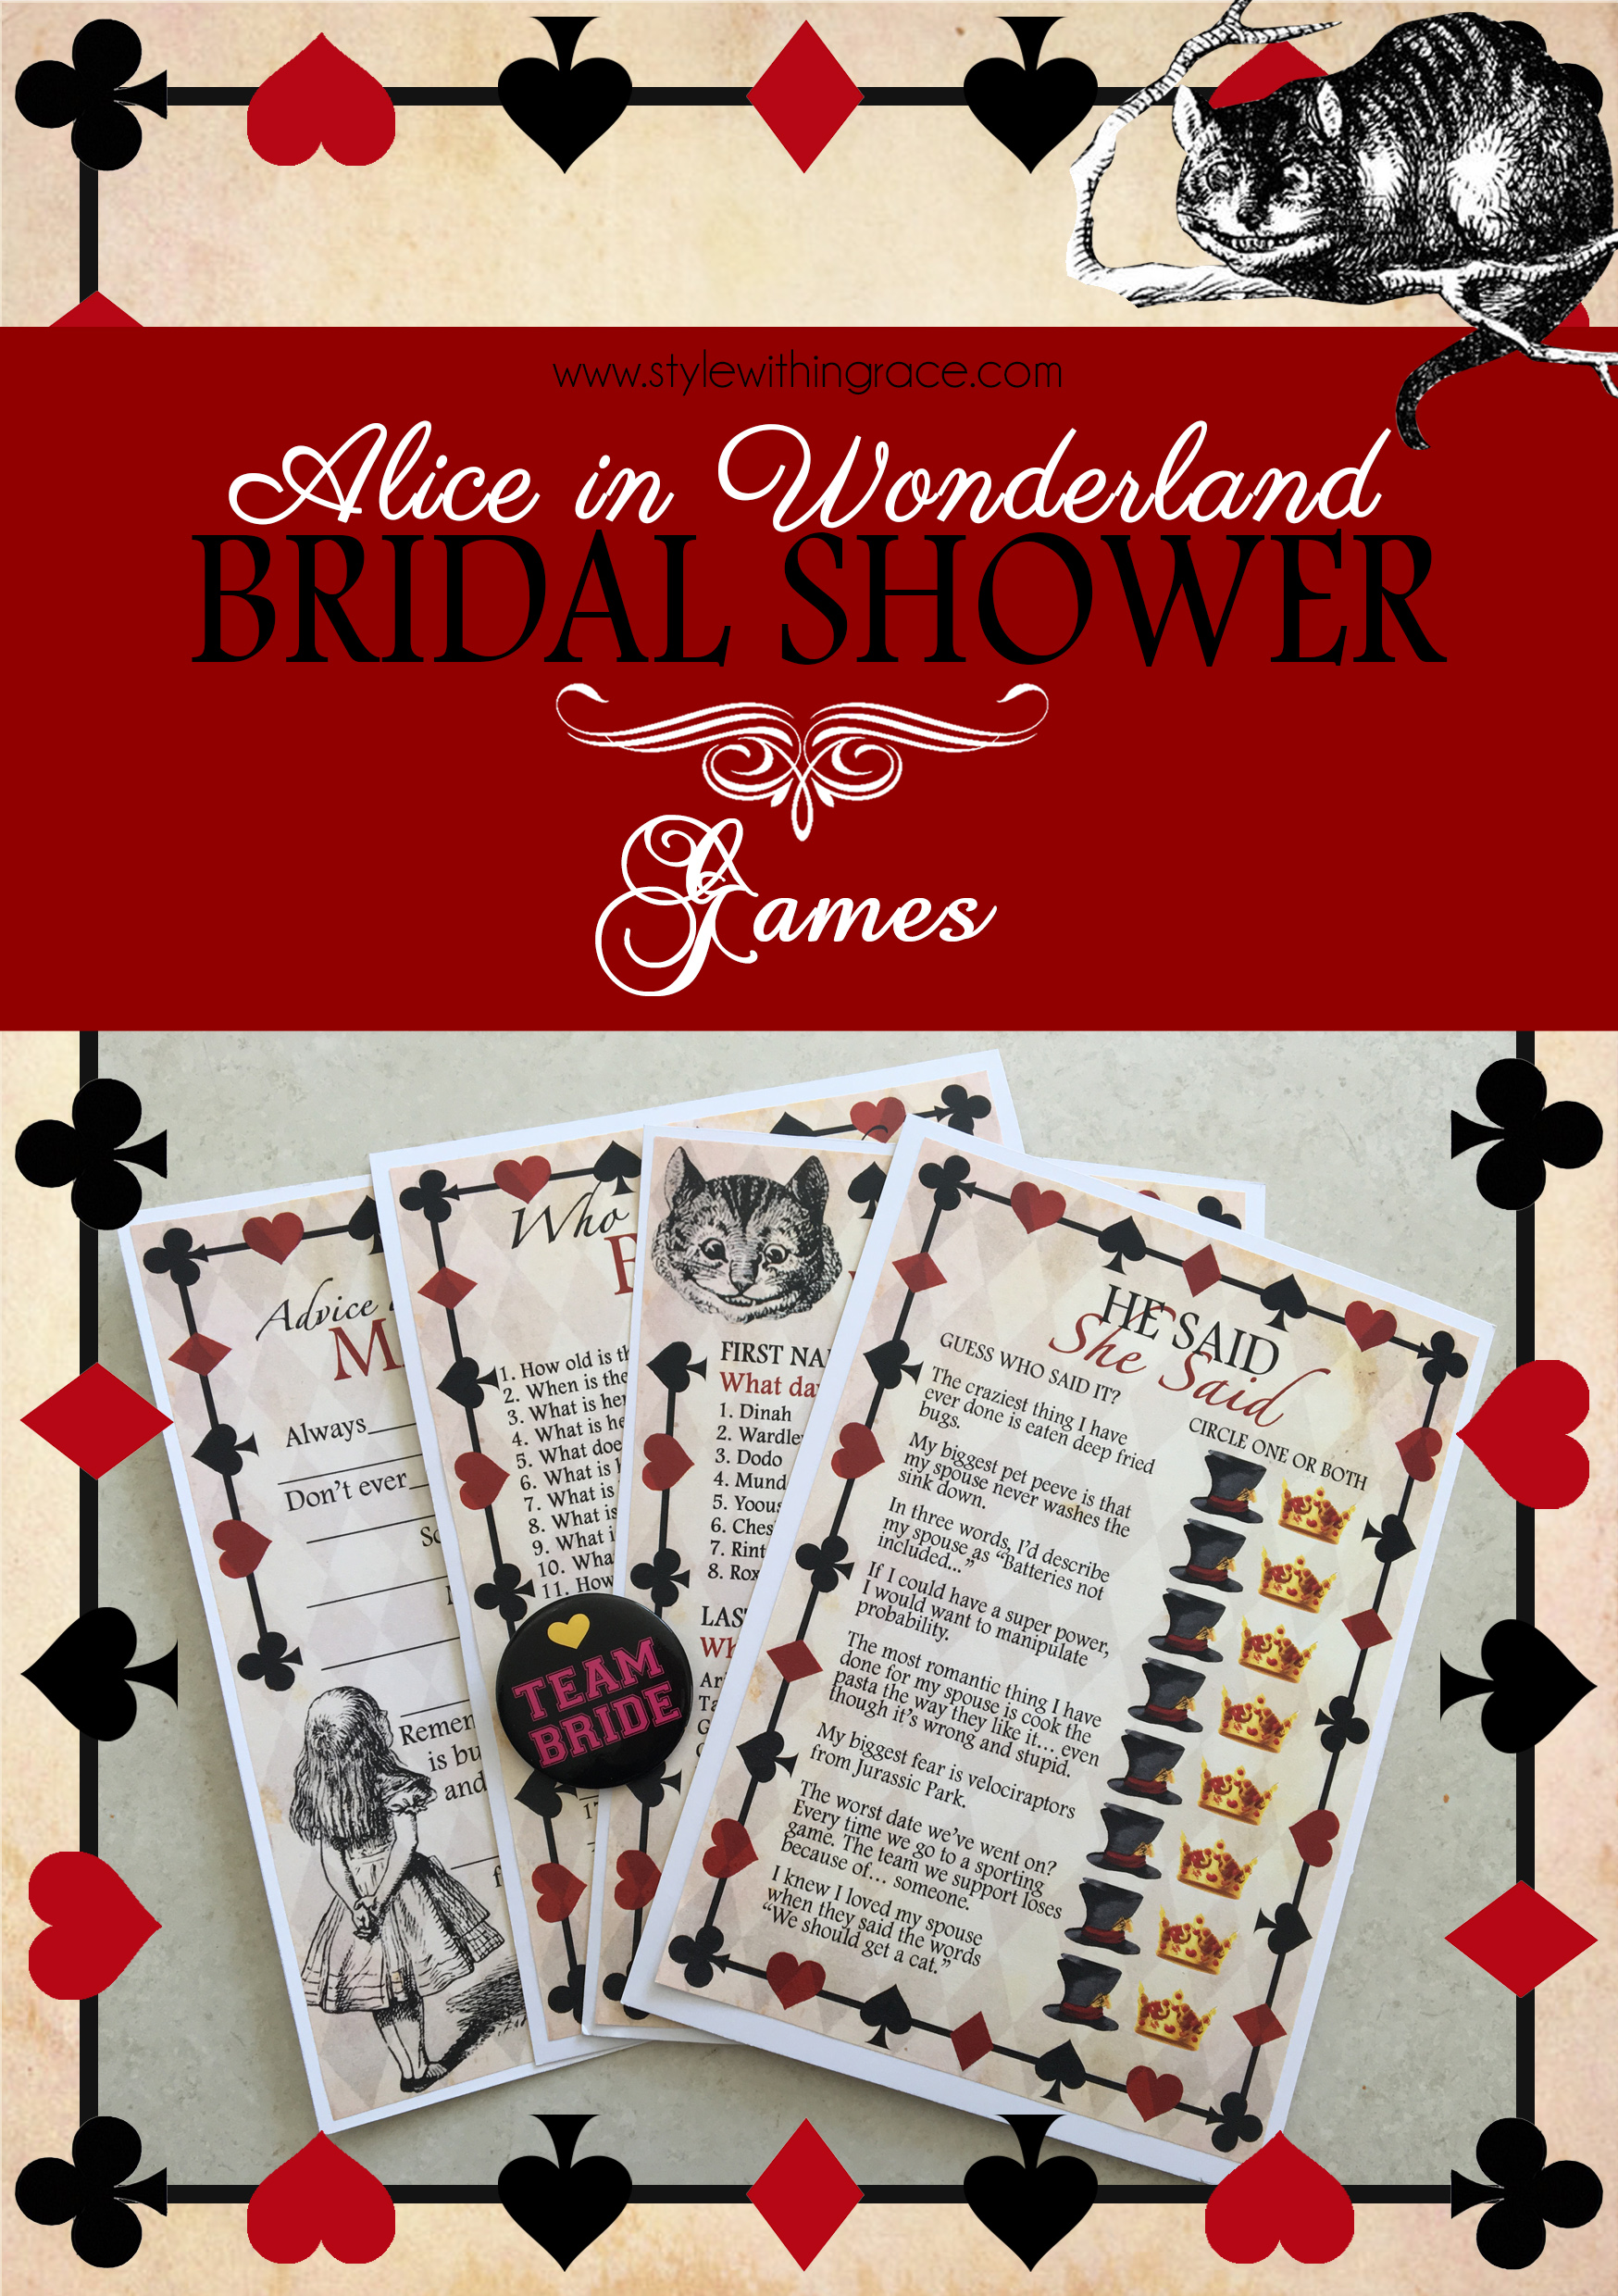 Alice in Wonderland Bridal Shower Games - Free printable templates and ideas for an awesome fun hens night or bridal shower themed around Alice in Wonderland.